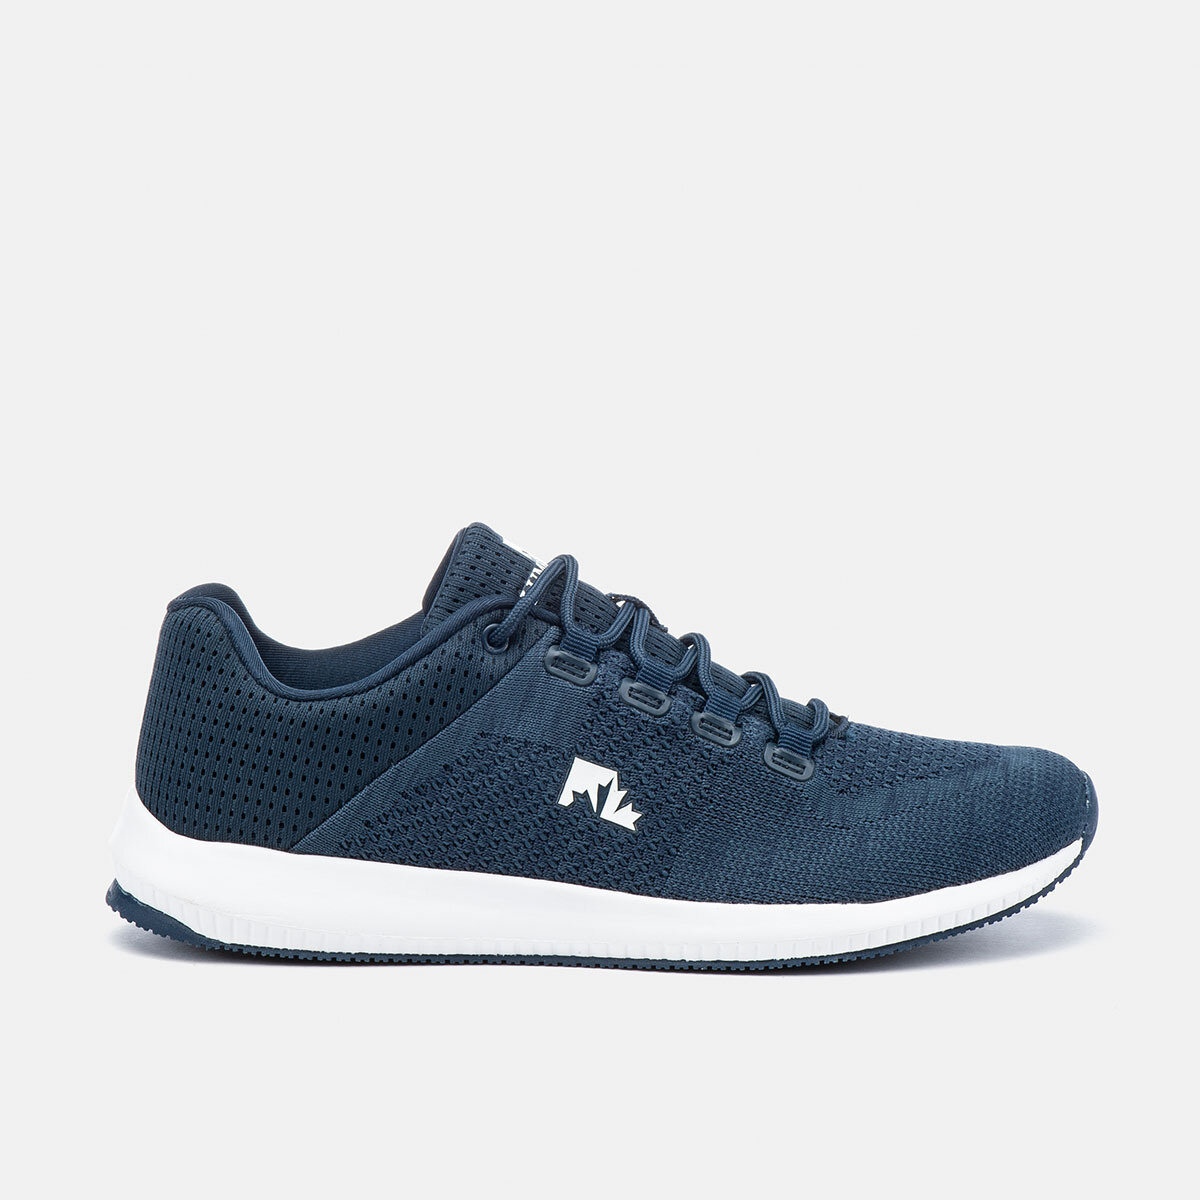 ALLE BLACK Man Running shoes